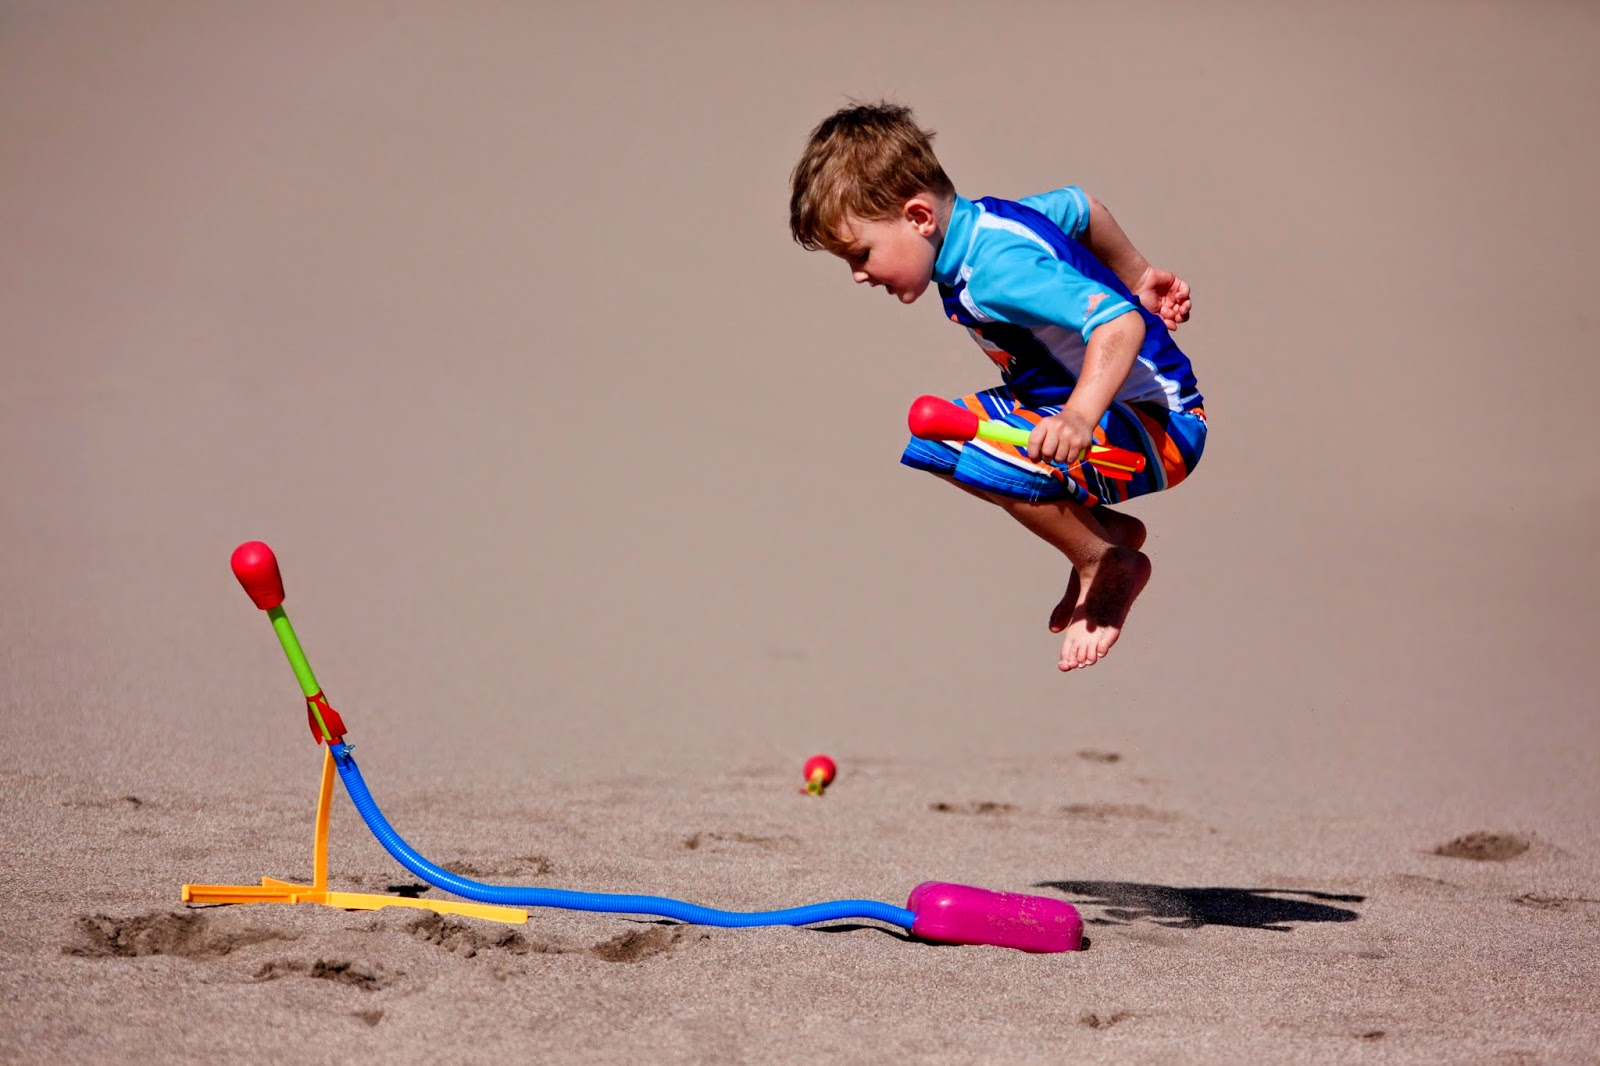 A little boy jumping to land on a toy rocket launcher at Sand Danes National Park.